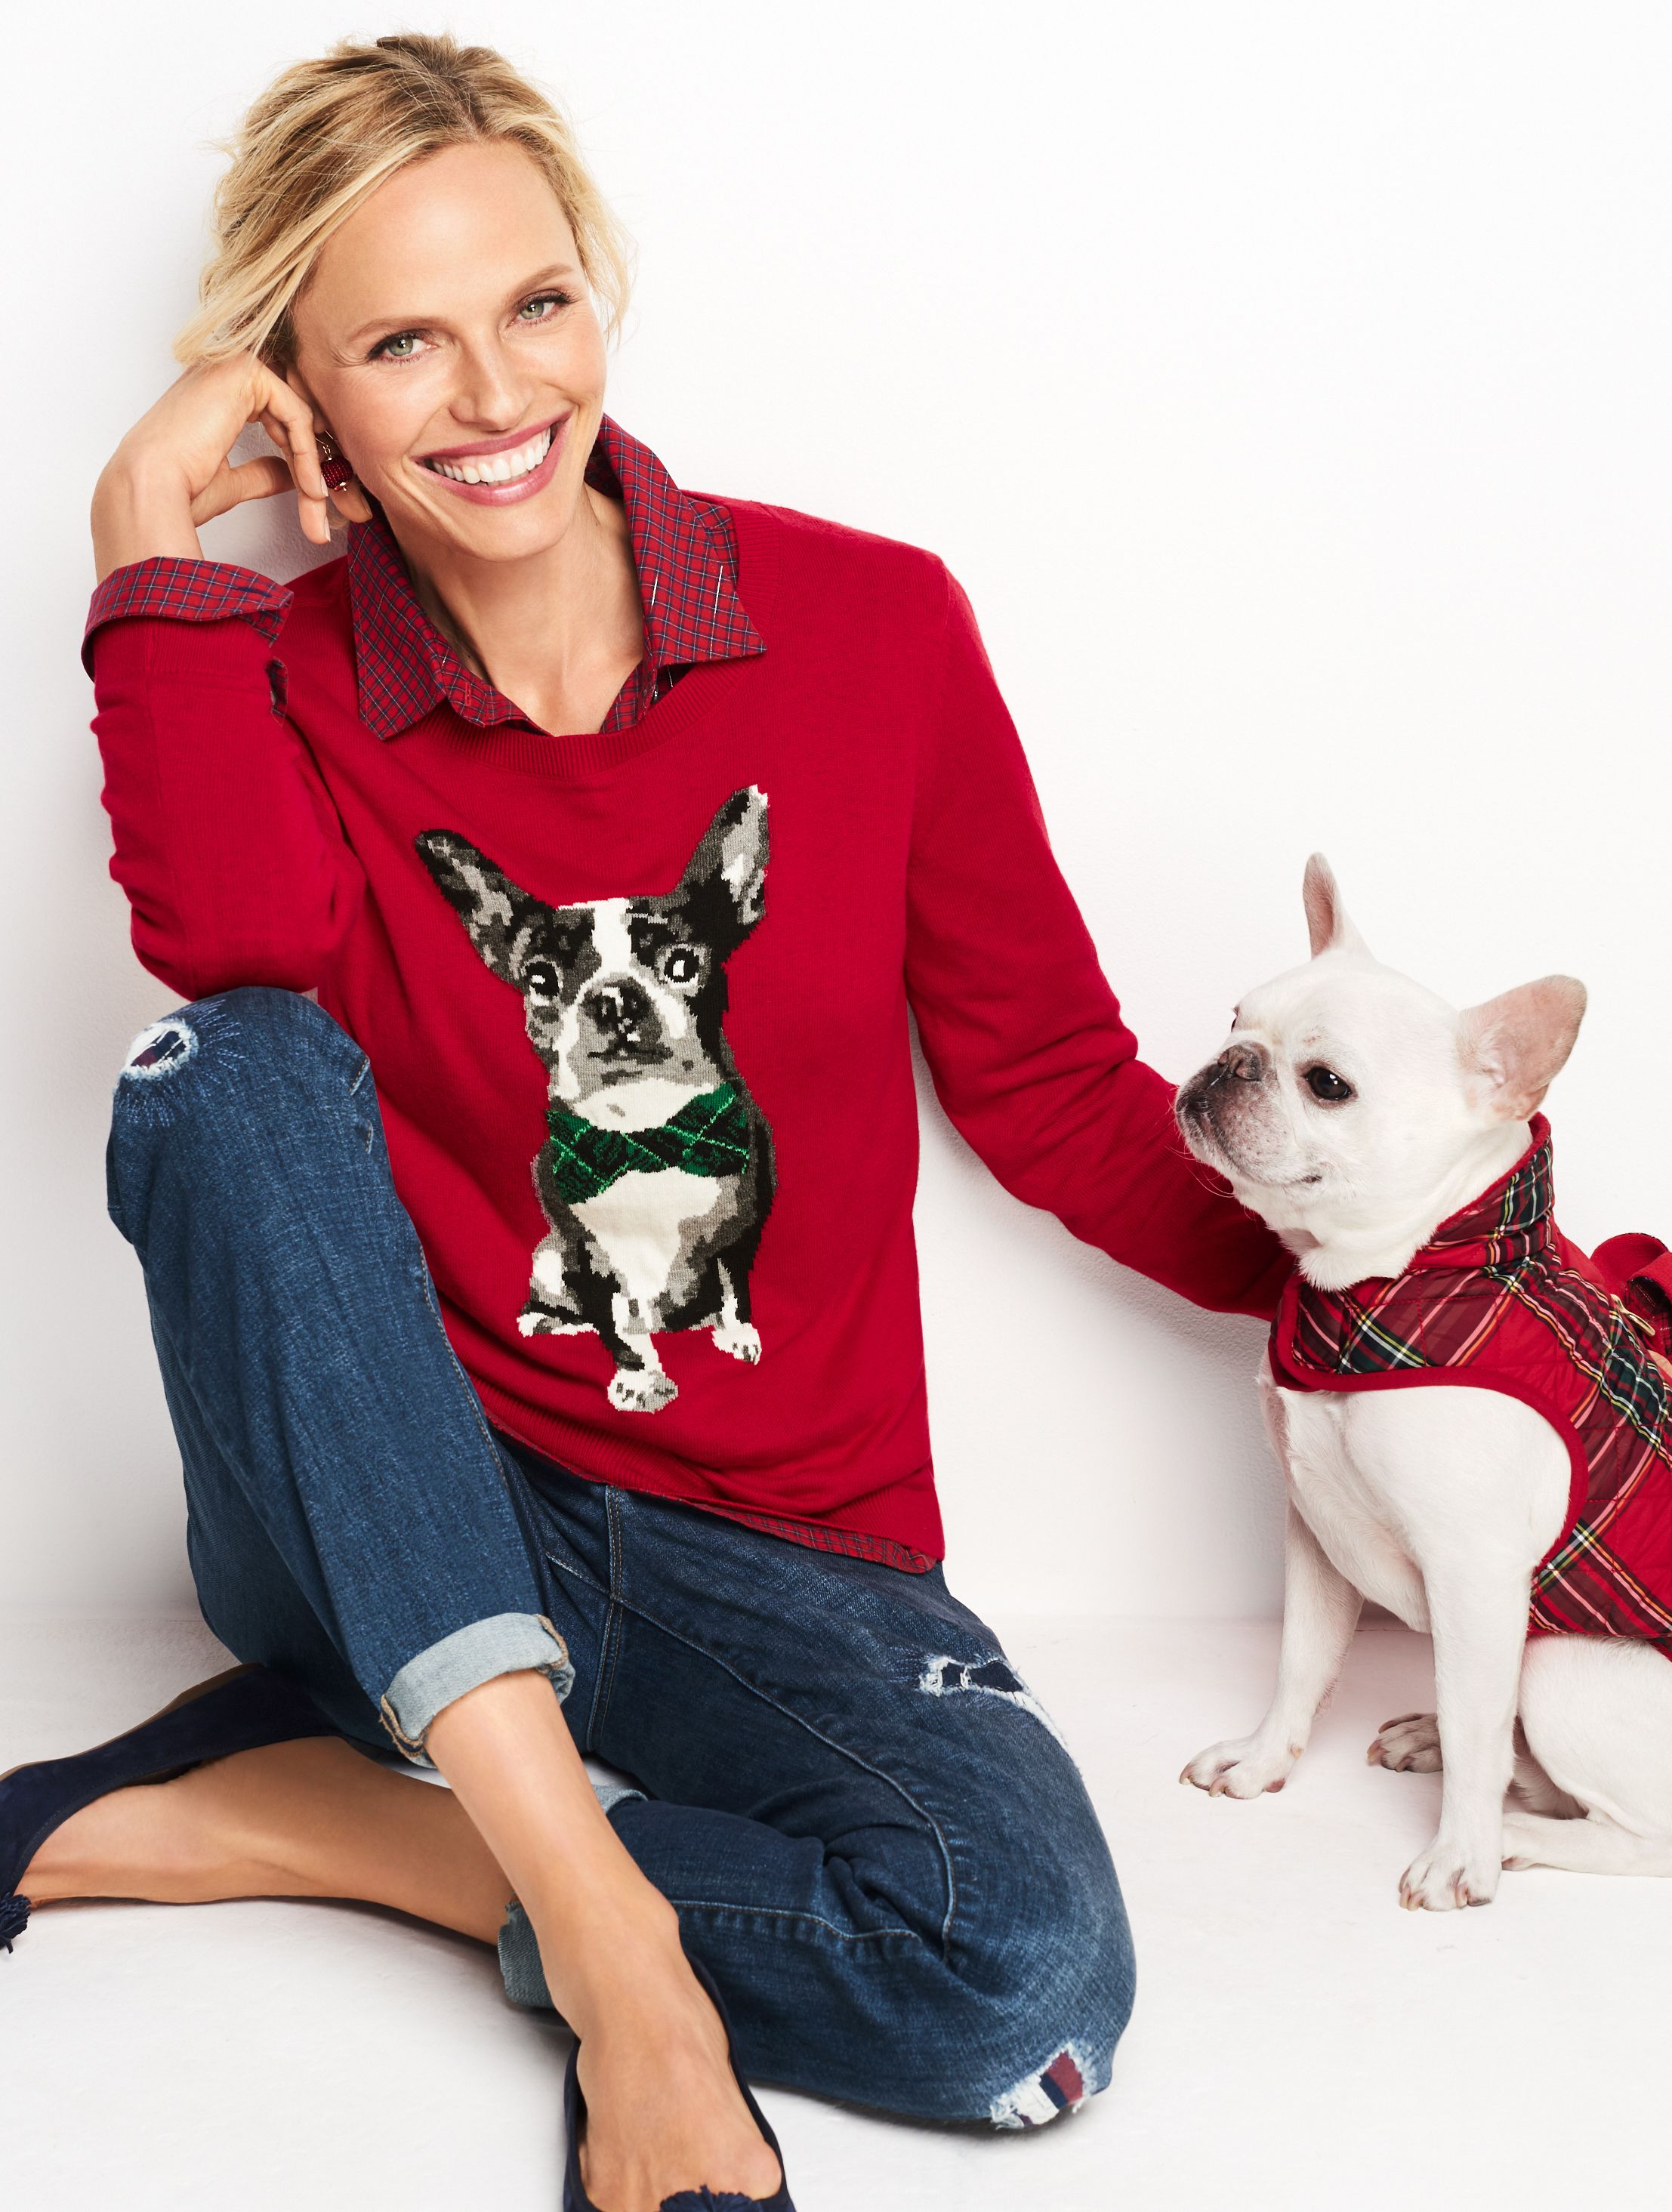 Discussion on this topic: Niki Taylor Says Its Stylish to Give , niki-taylor-says-its-stylish-to-give/